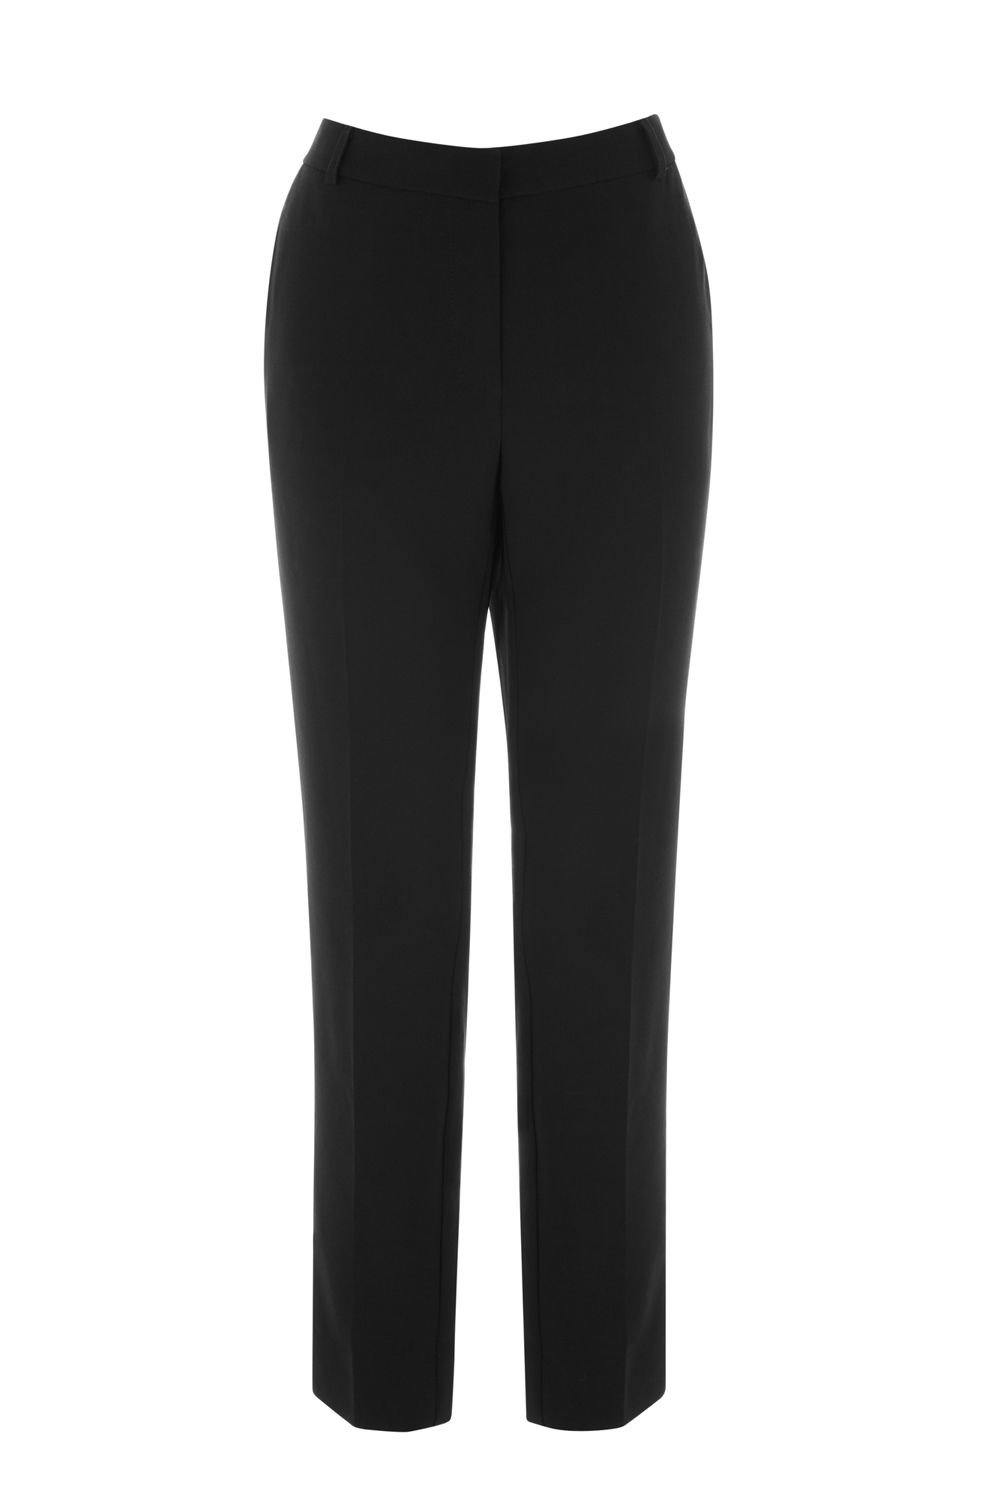 Warehouse Slim Leg Trousers, Black